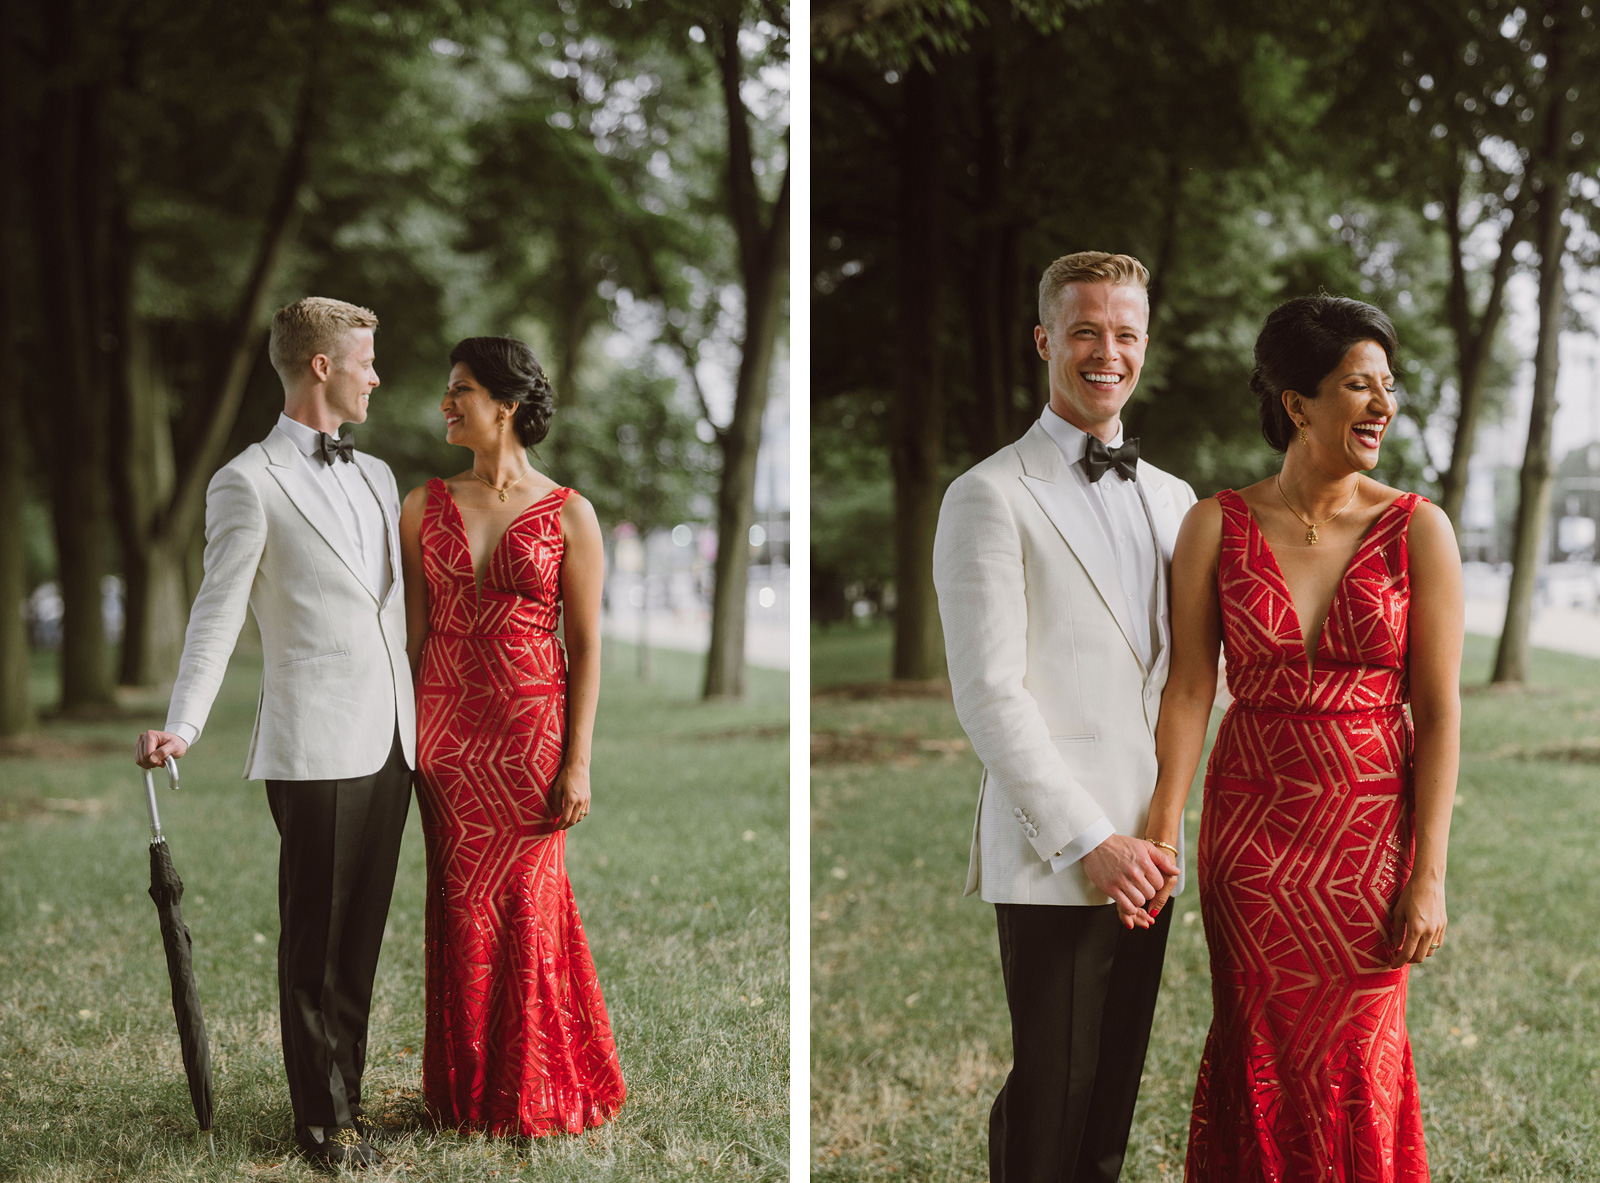 bride and groom in formal wear at a park in Chicago - portland wedding photography